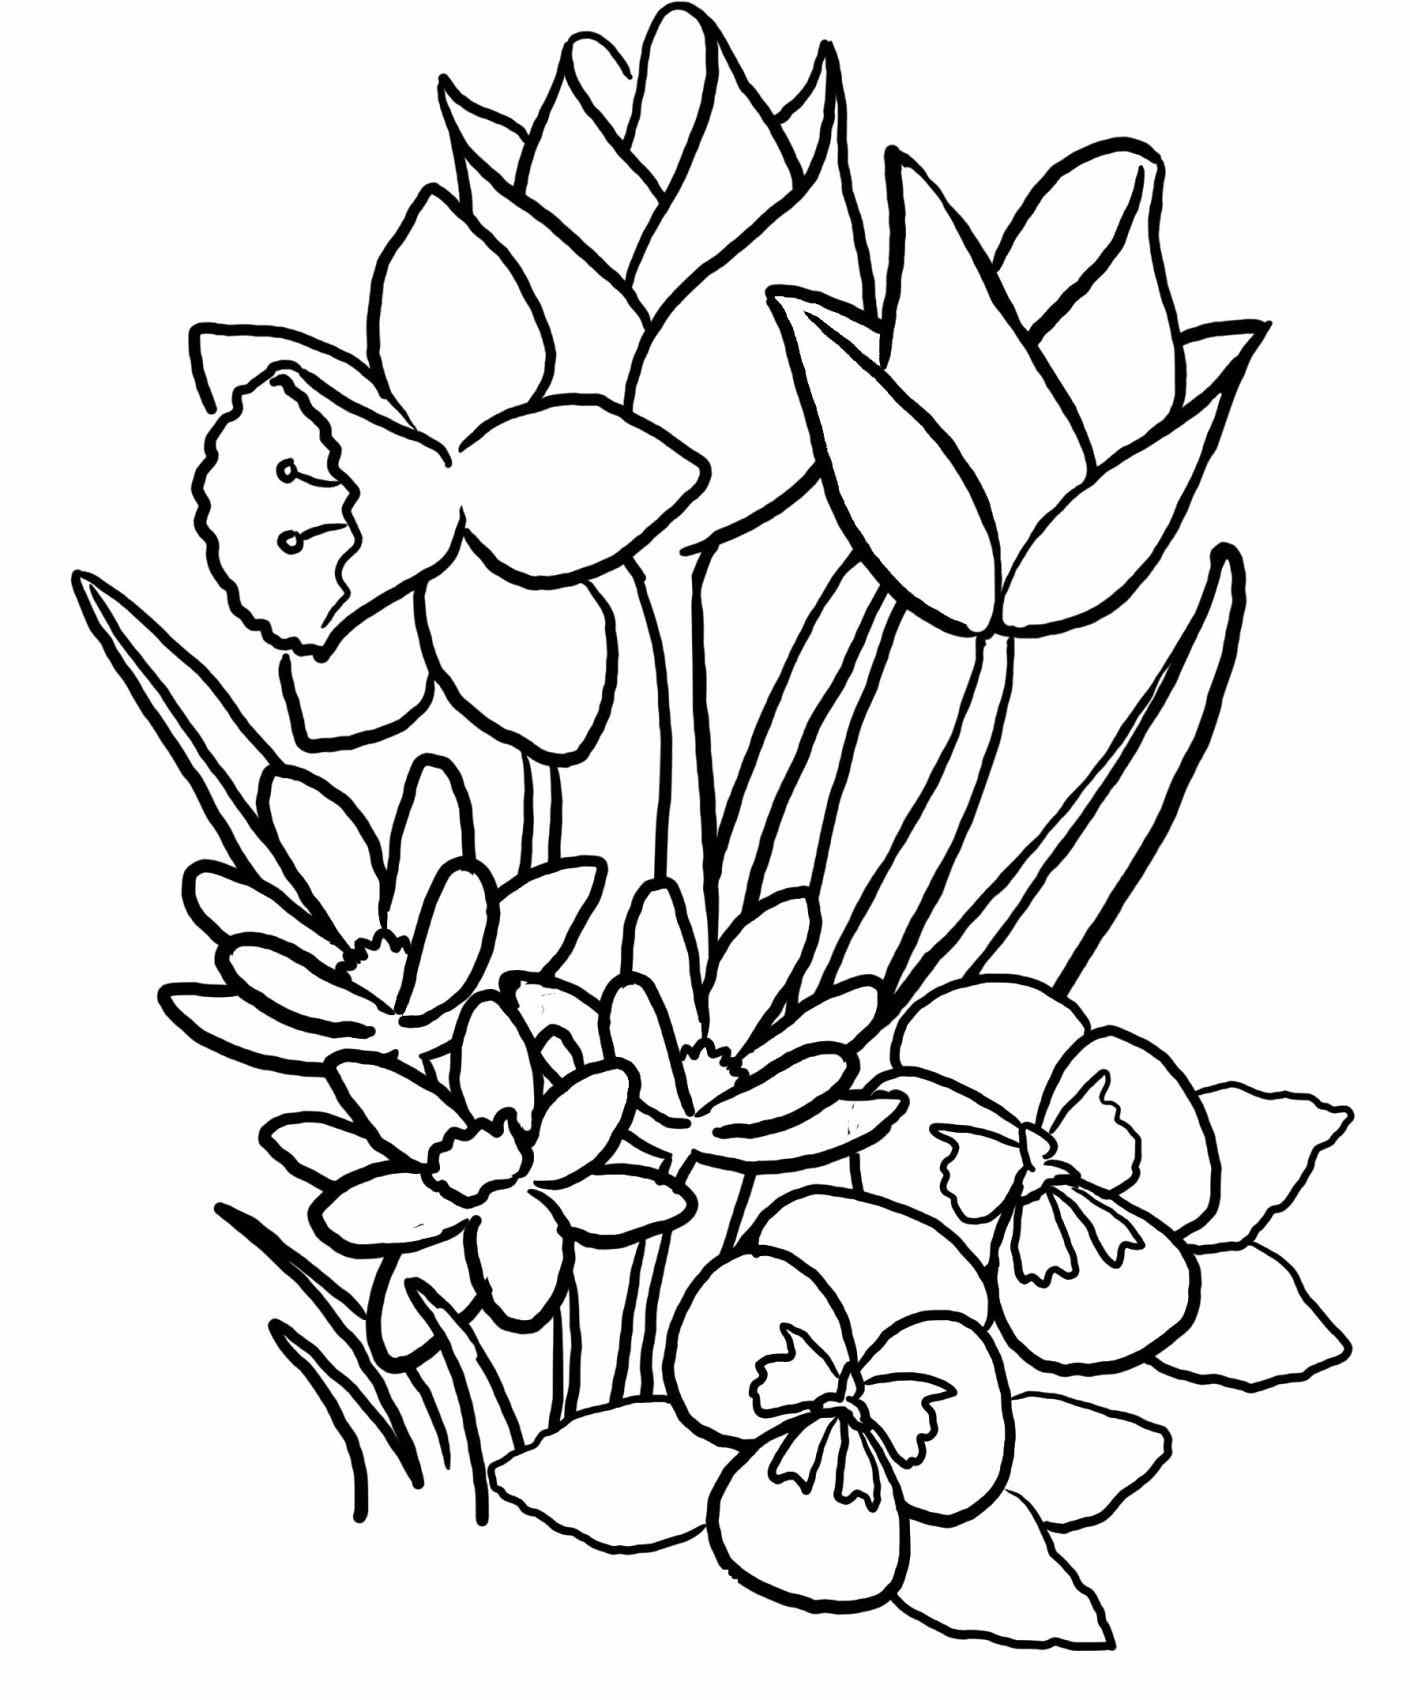 How to draw spring flowers step by step choice image flower how to draw spring flowers gallery flower decoration ideas spring flower drawing at getdrawings free for mightylinksfo